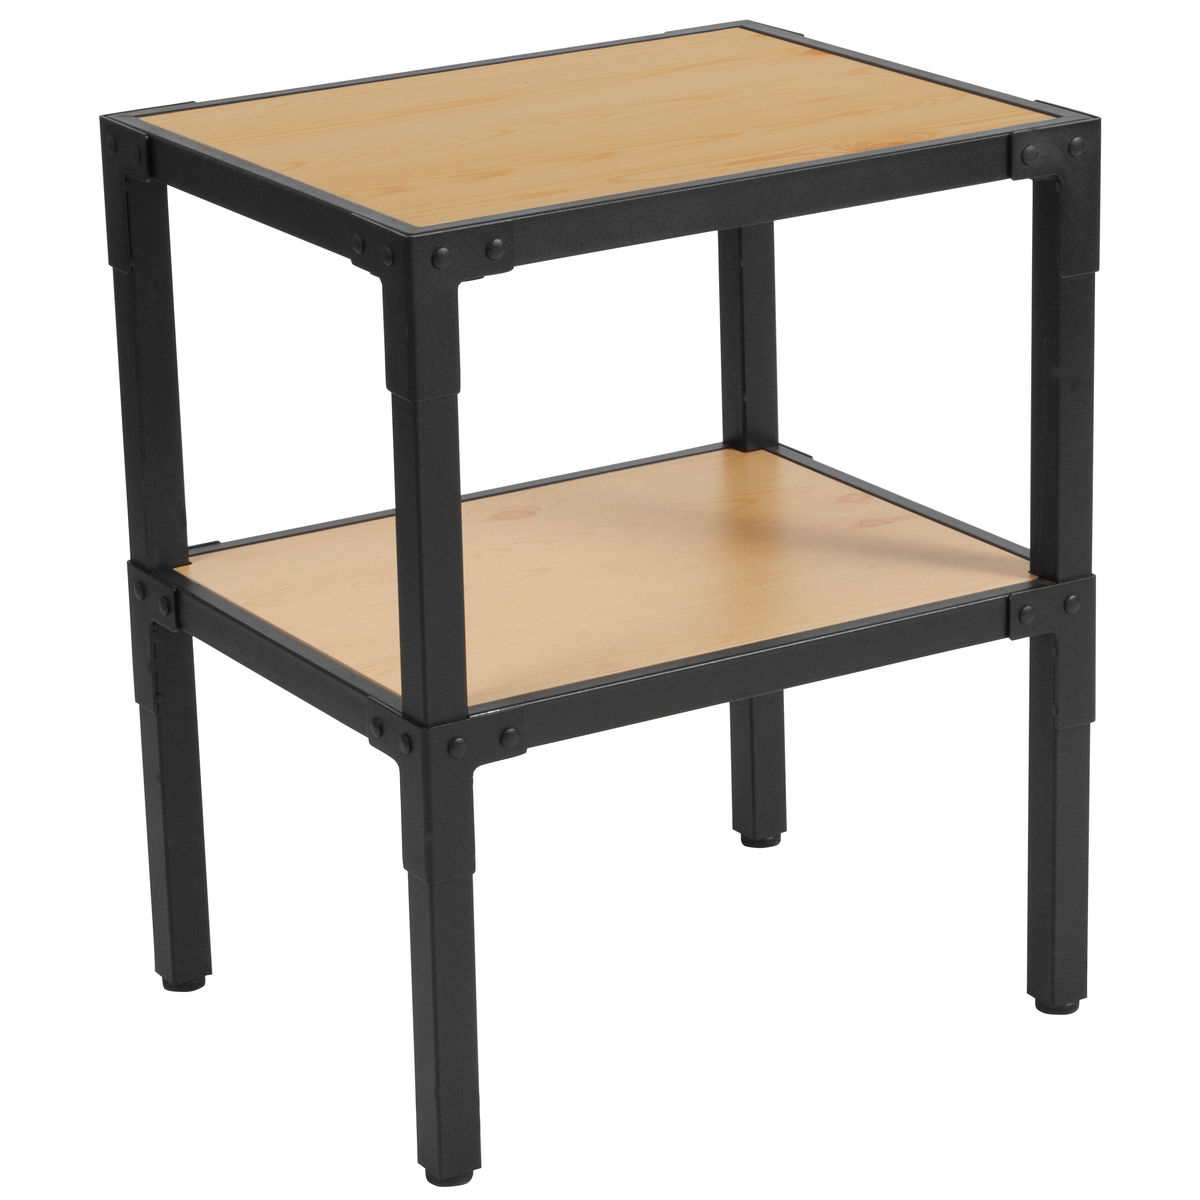 pine wood side table nan bizchair flash furniture main outdoor our holmby collection knotted grain finish with black metal legs sears coffee big garden umbrella west elm acorn